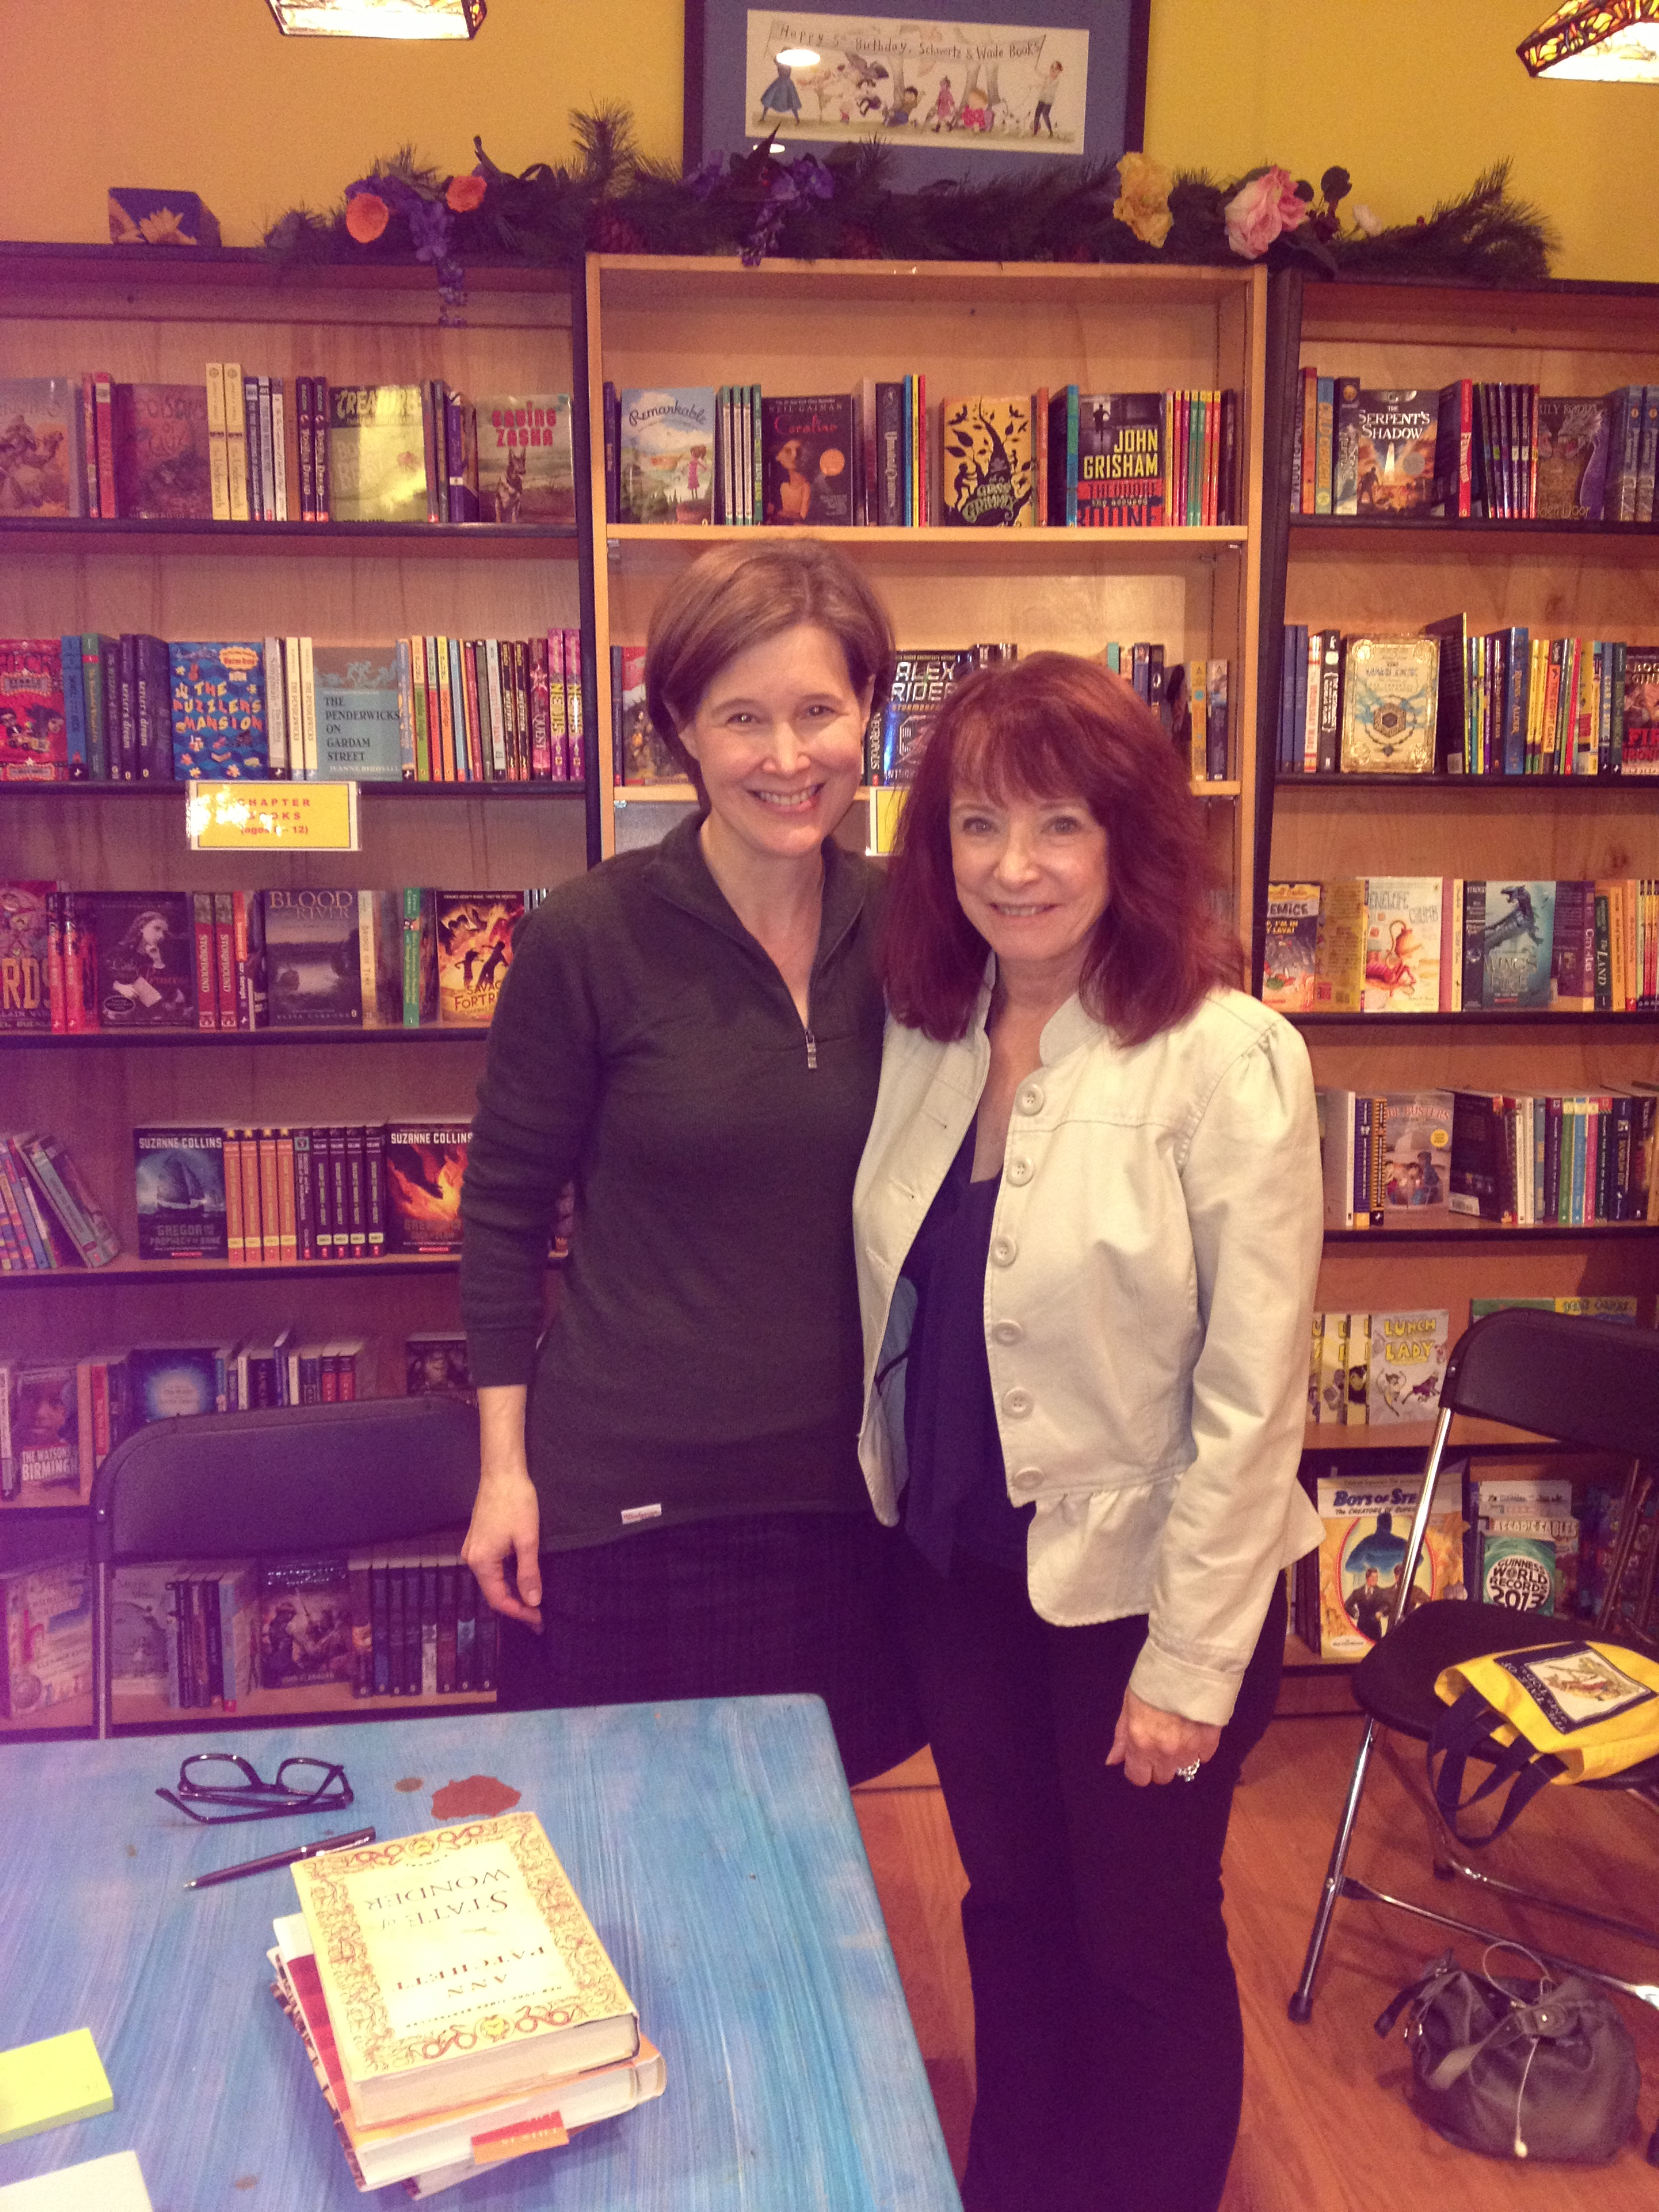 Ann Patchett reading event for her newest book, This is a Story of a Happy Marriage